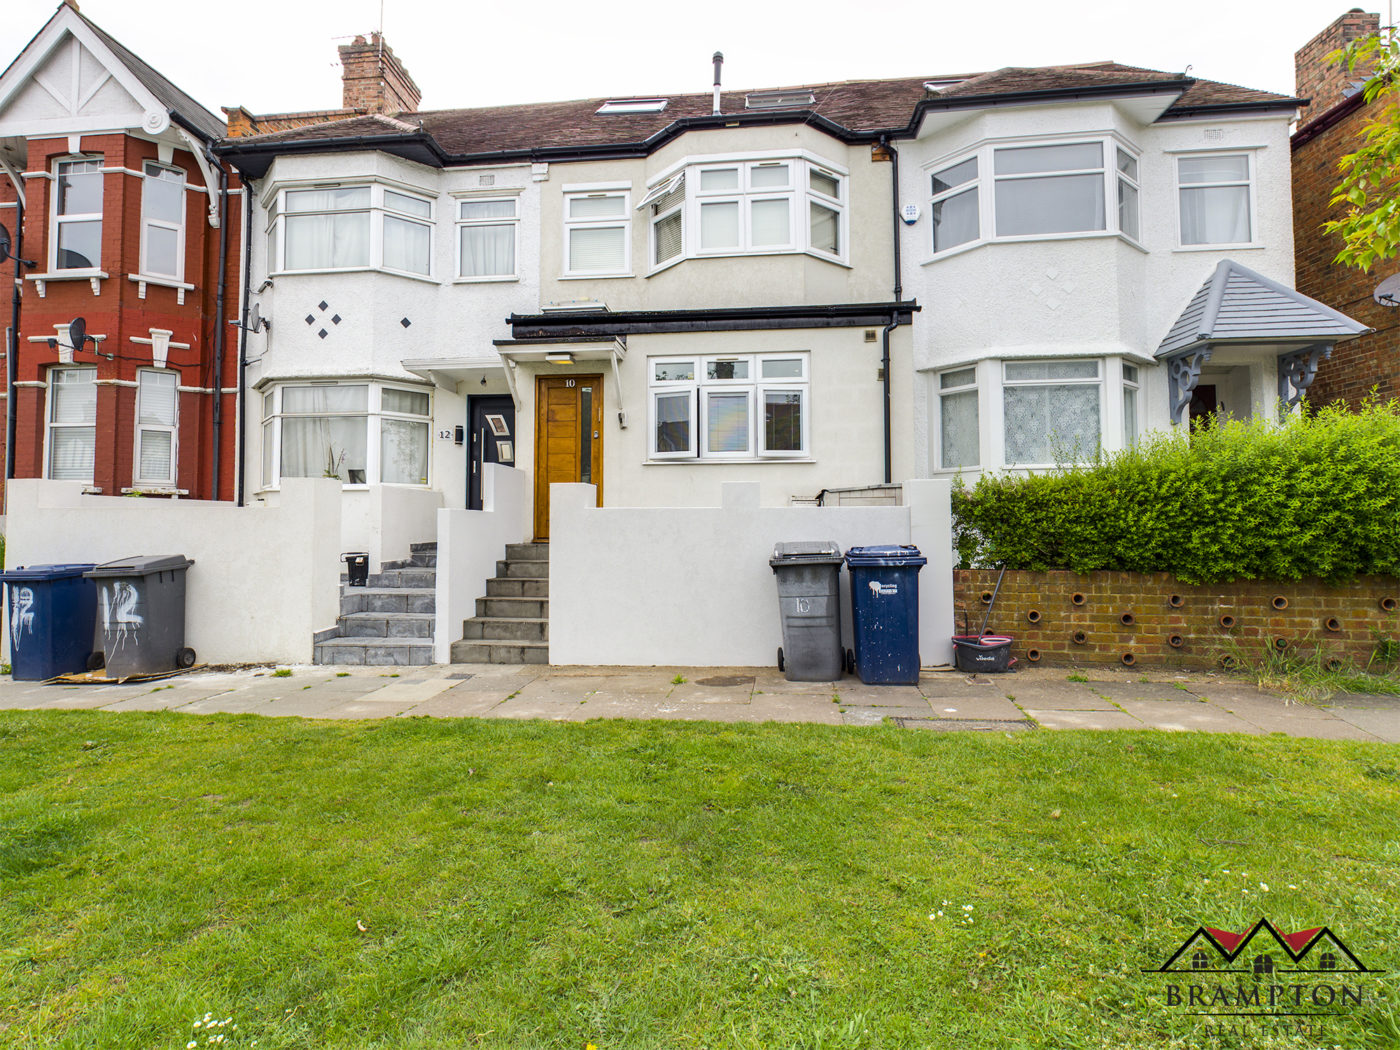 Hillview Gardens, Hendon, NW4